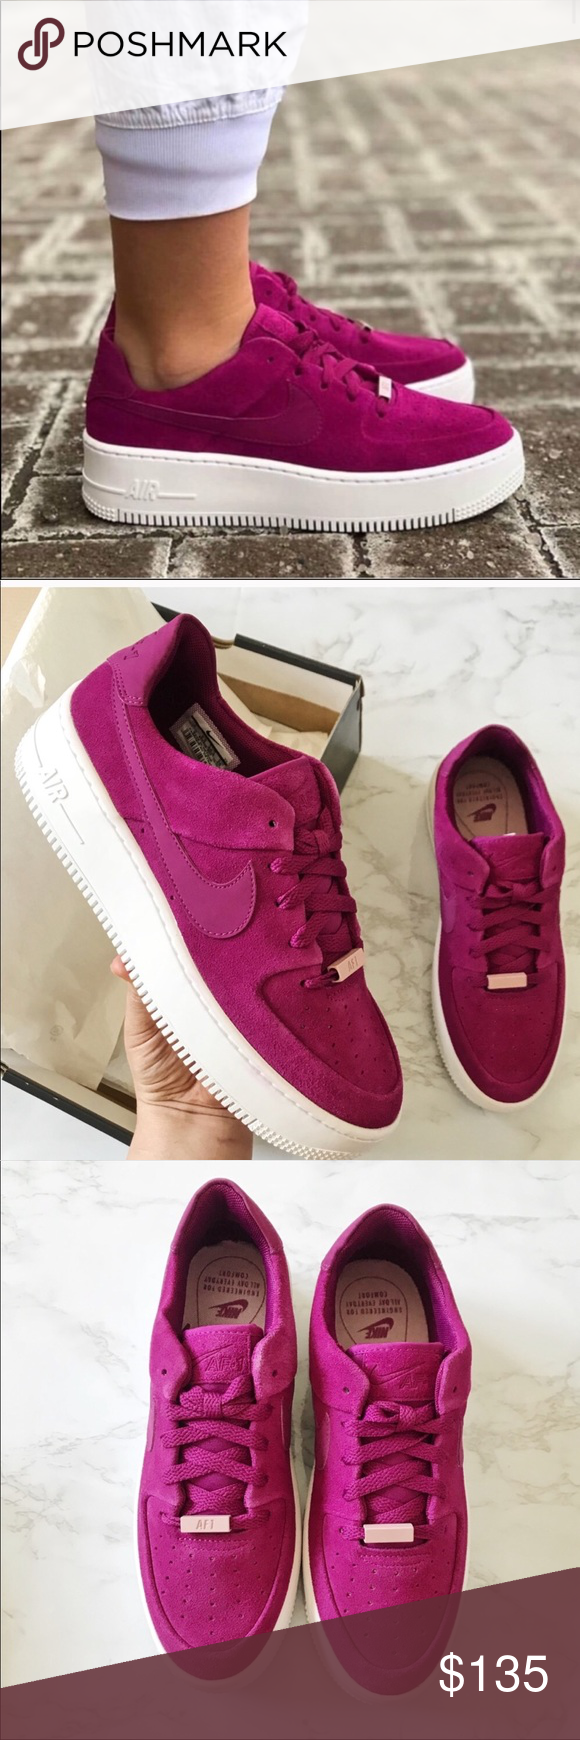 Nike Air Force Sage Low Womens Shoes Sneakers Nike Air Clothes Design